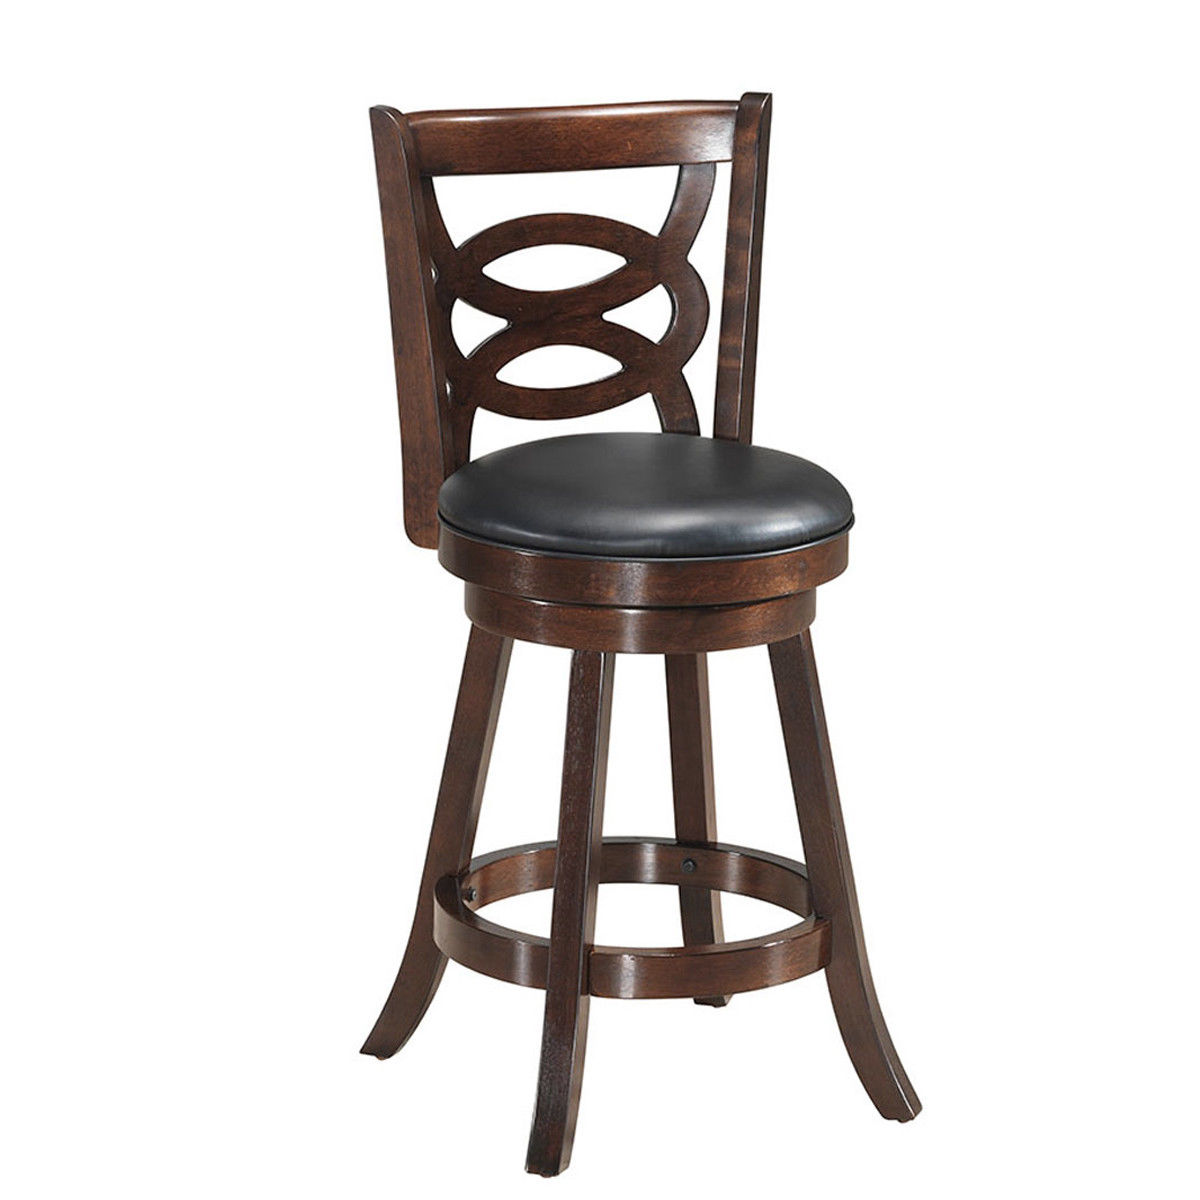 Costway Swivel Stool 24'' Counter Height Upholstered Dining Chair Home Kitchen Espresso